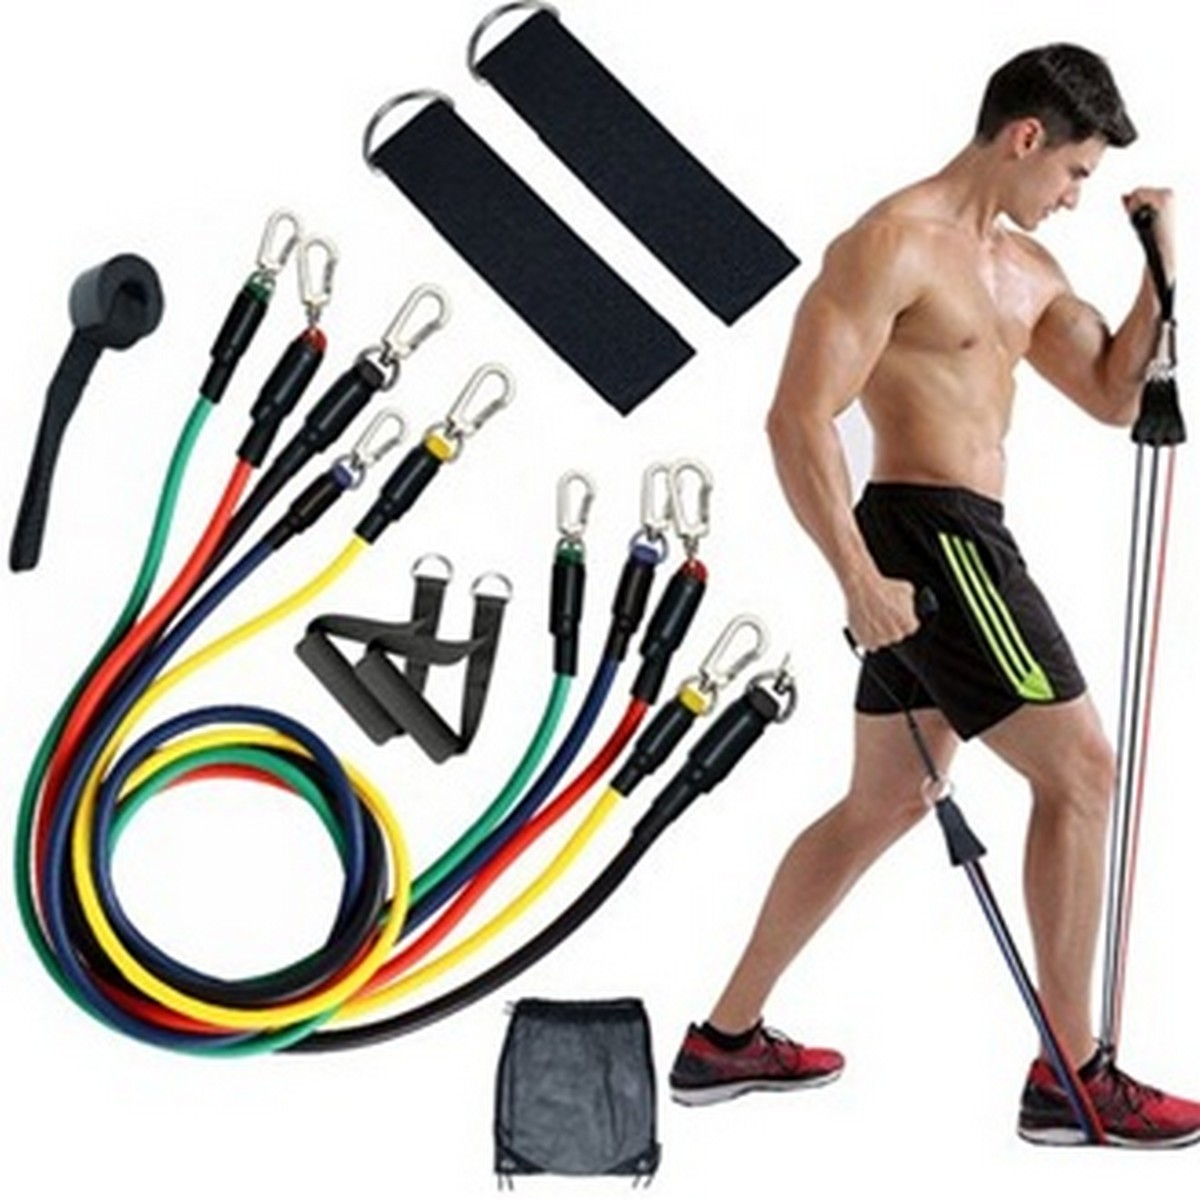 5 In 1 Power Resistance Exercise Band